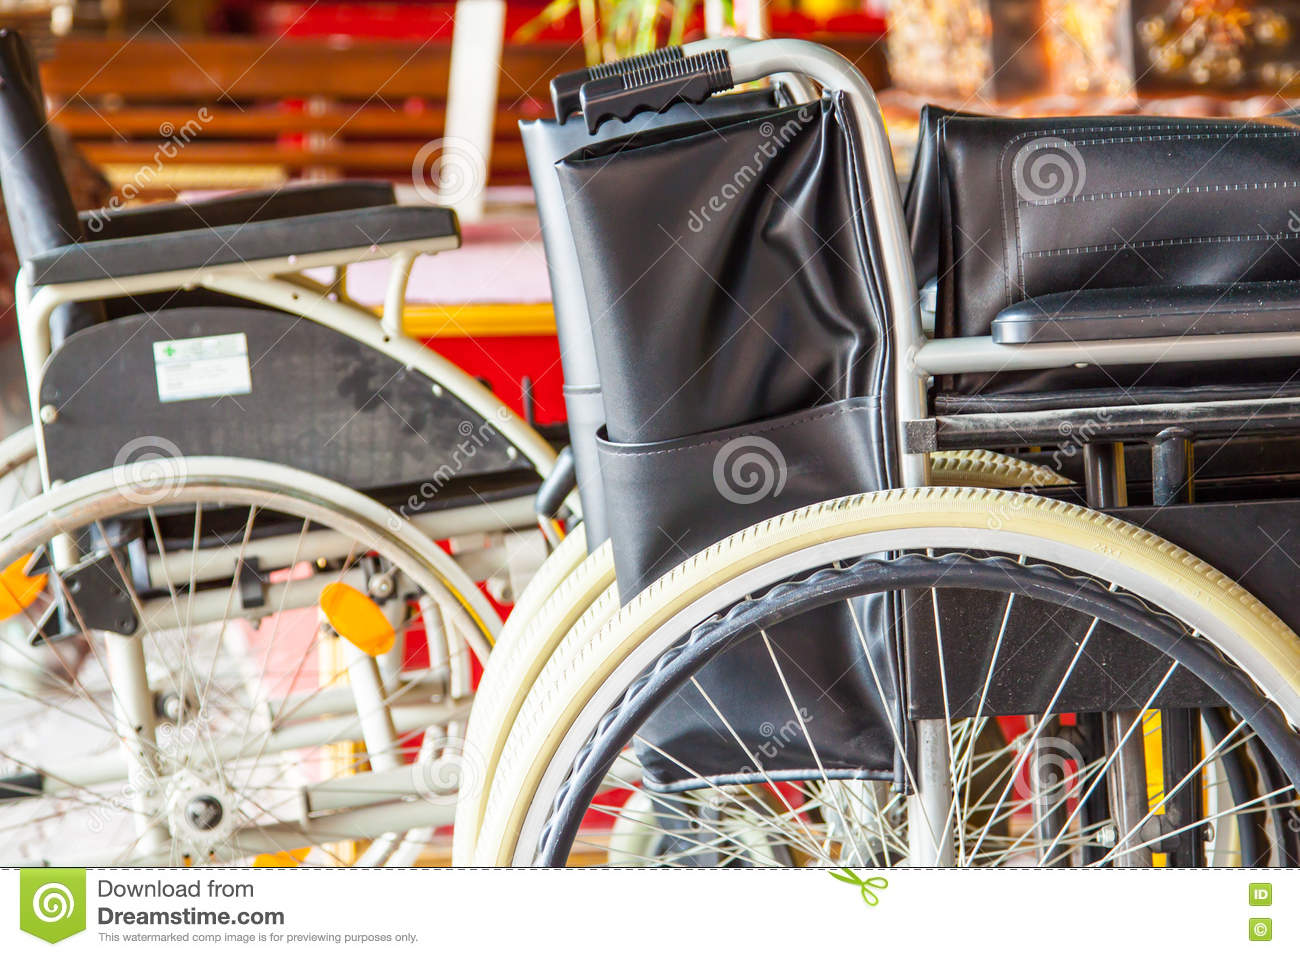 Chaise Handicapé Chaise Handicapée Photo Stock Image Du Mobilité Handicap 70833254